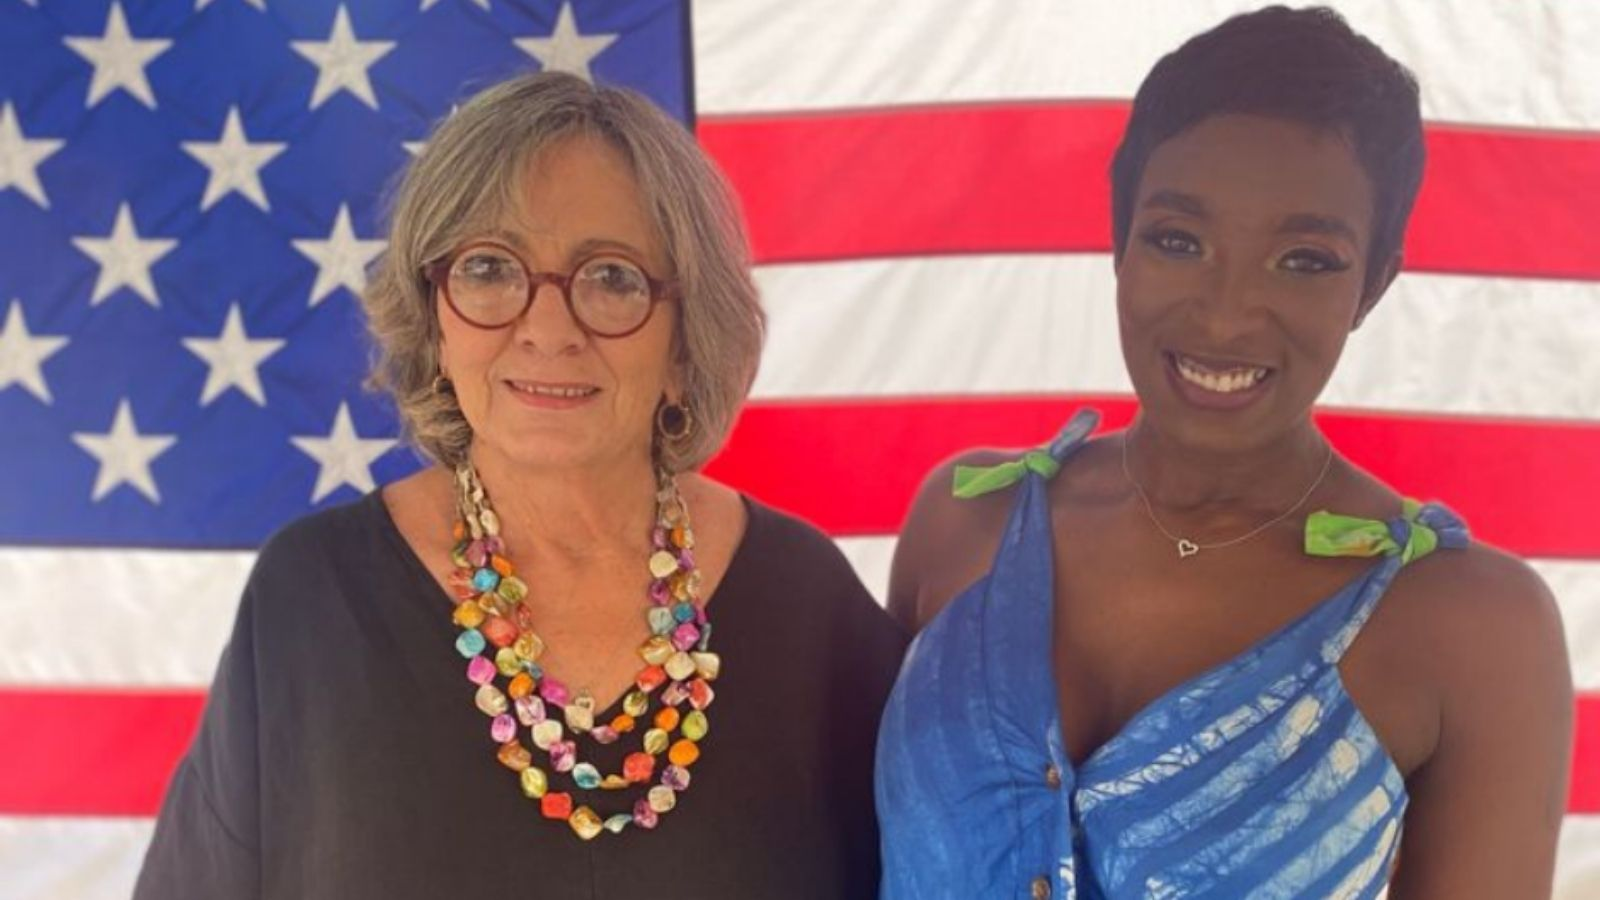 Ambassador to Barbados, the Eastern Caribbean and the OECS Linda Taglialatela and Barbadian singer Nikita pose for a photo before a live concert for Carribean American Heritage Month.